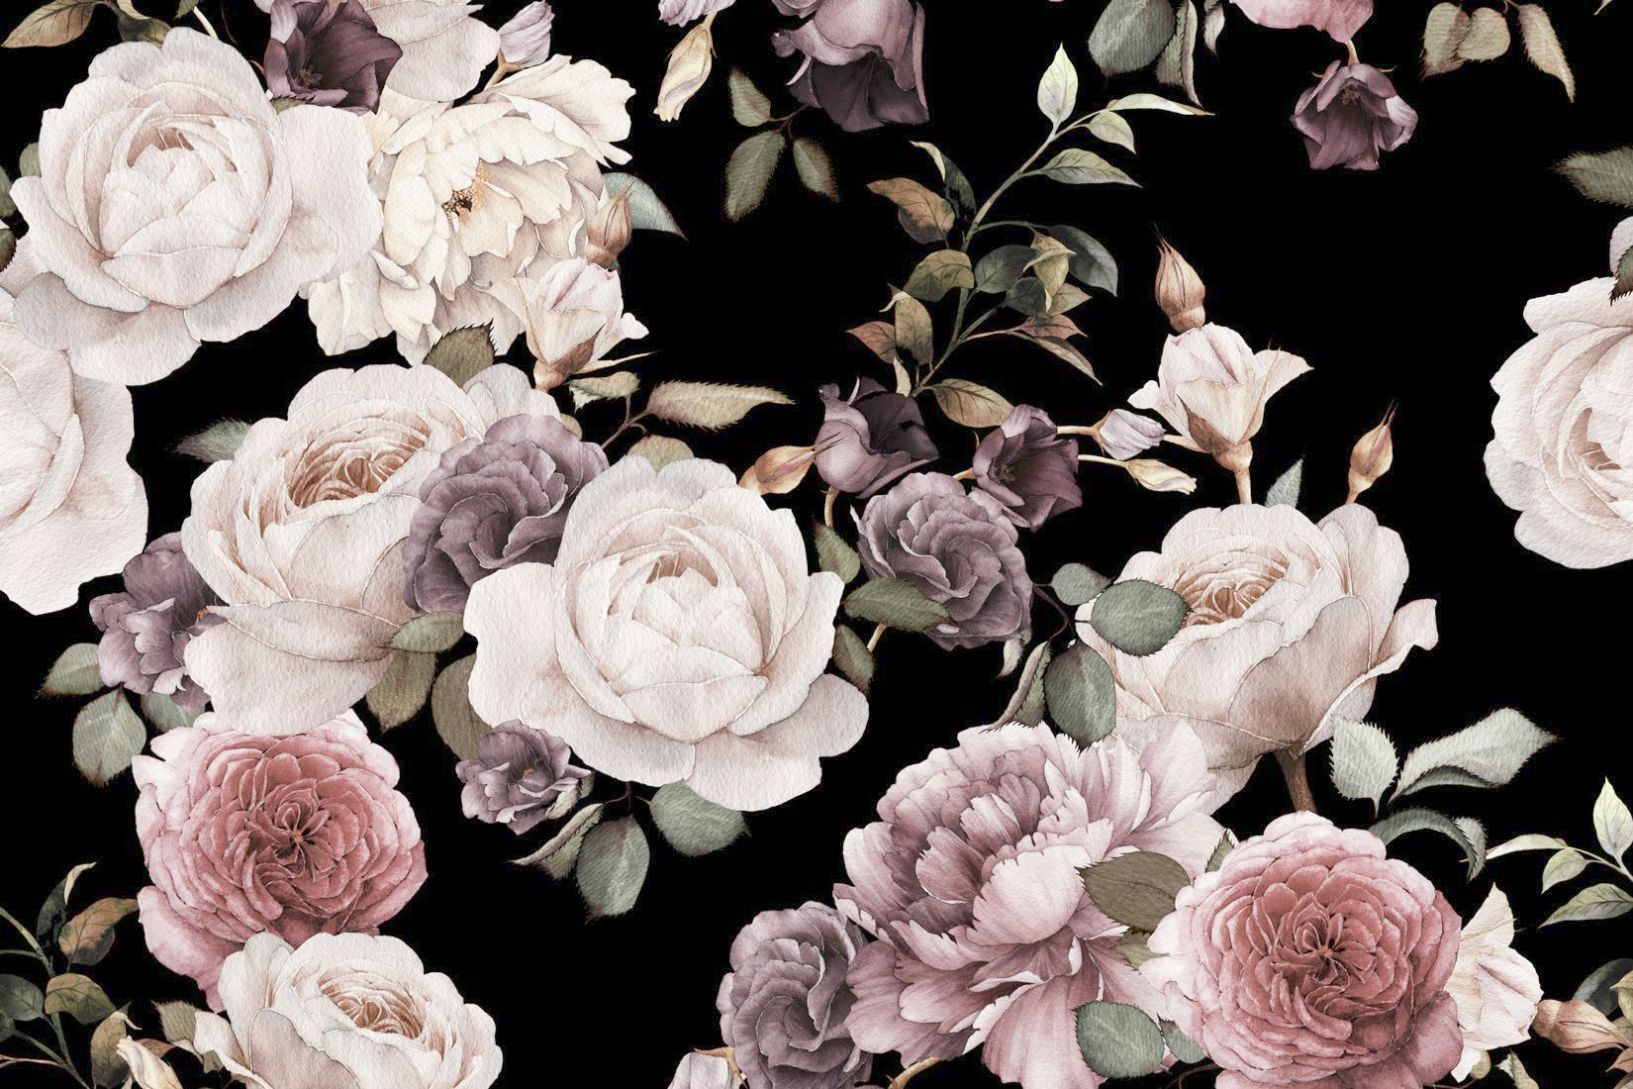 Vintage Floral Background High Resolution Cute Flowers Hd Wallpapers Free Download Floral Wallpaper Vintage Floral Wallpapers Black Floral Wallpaper